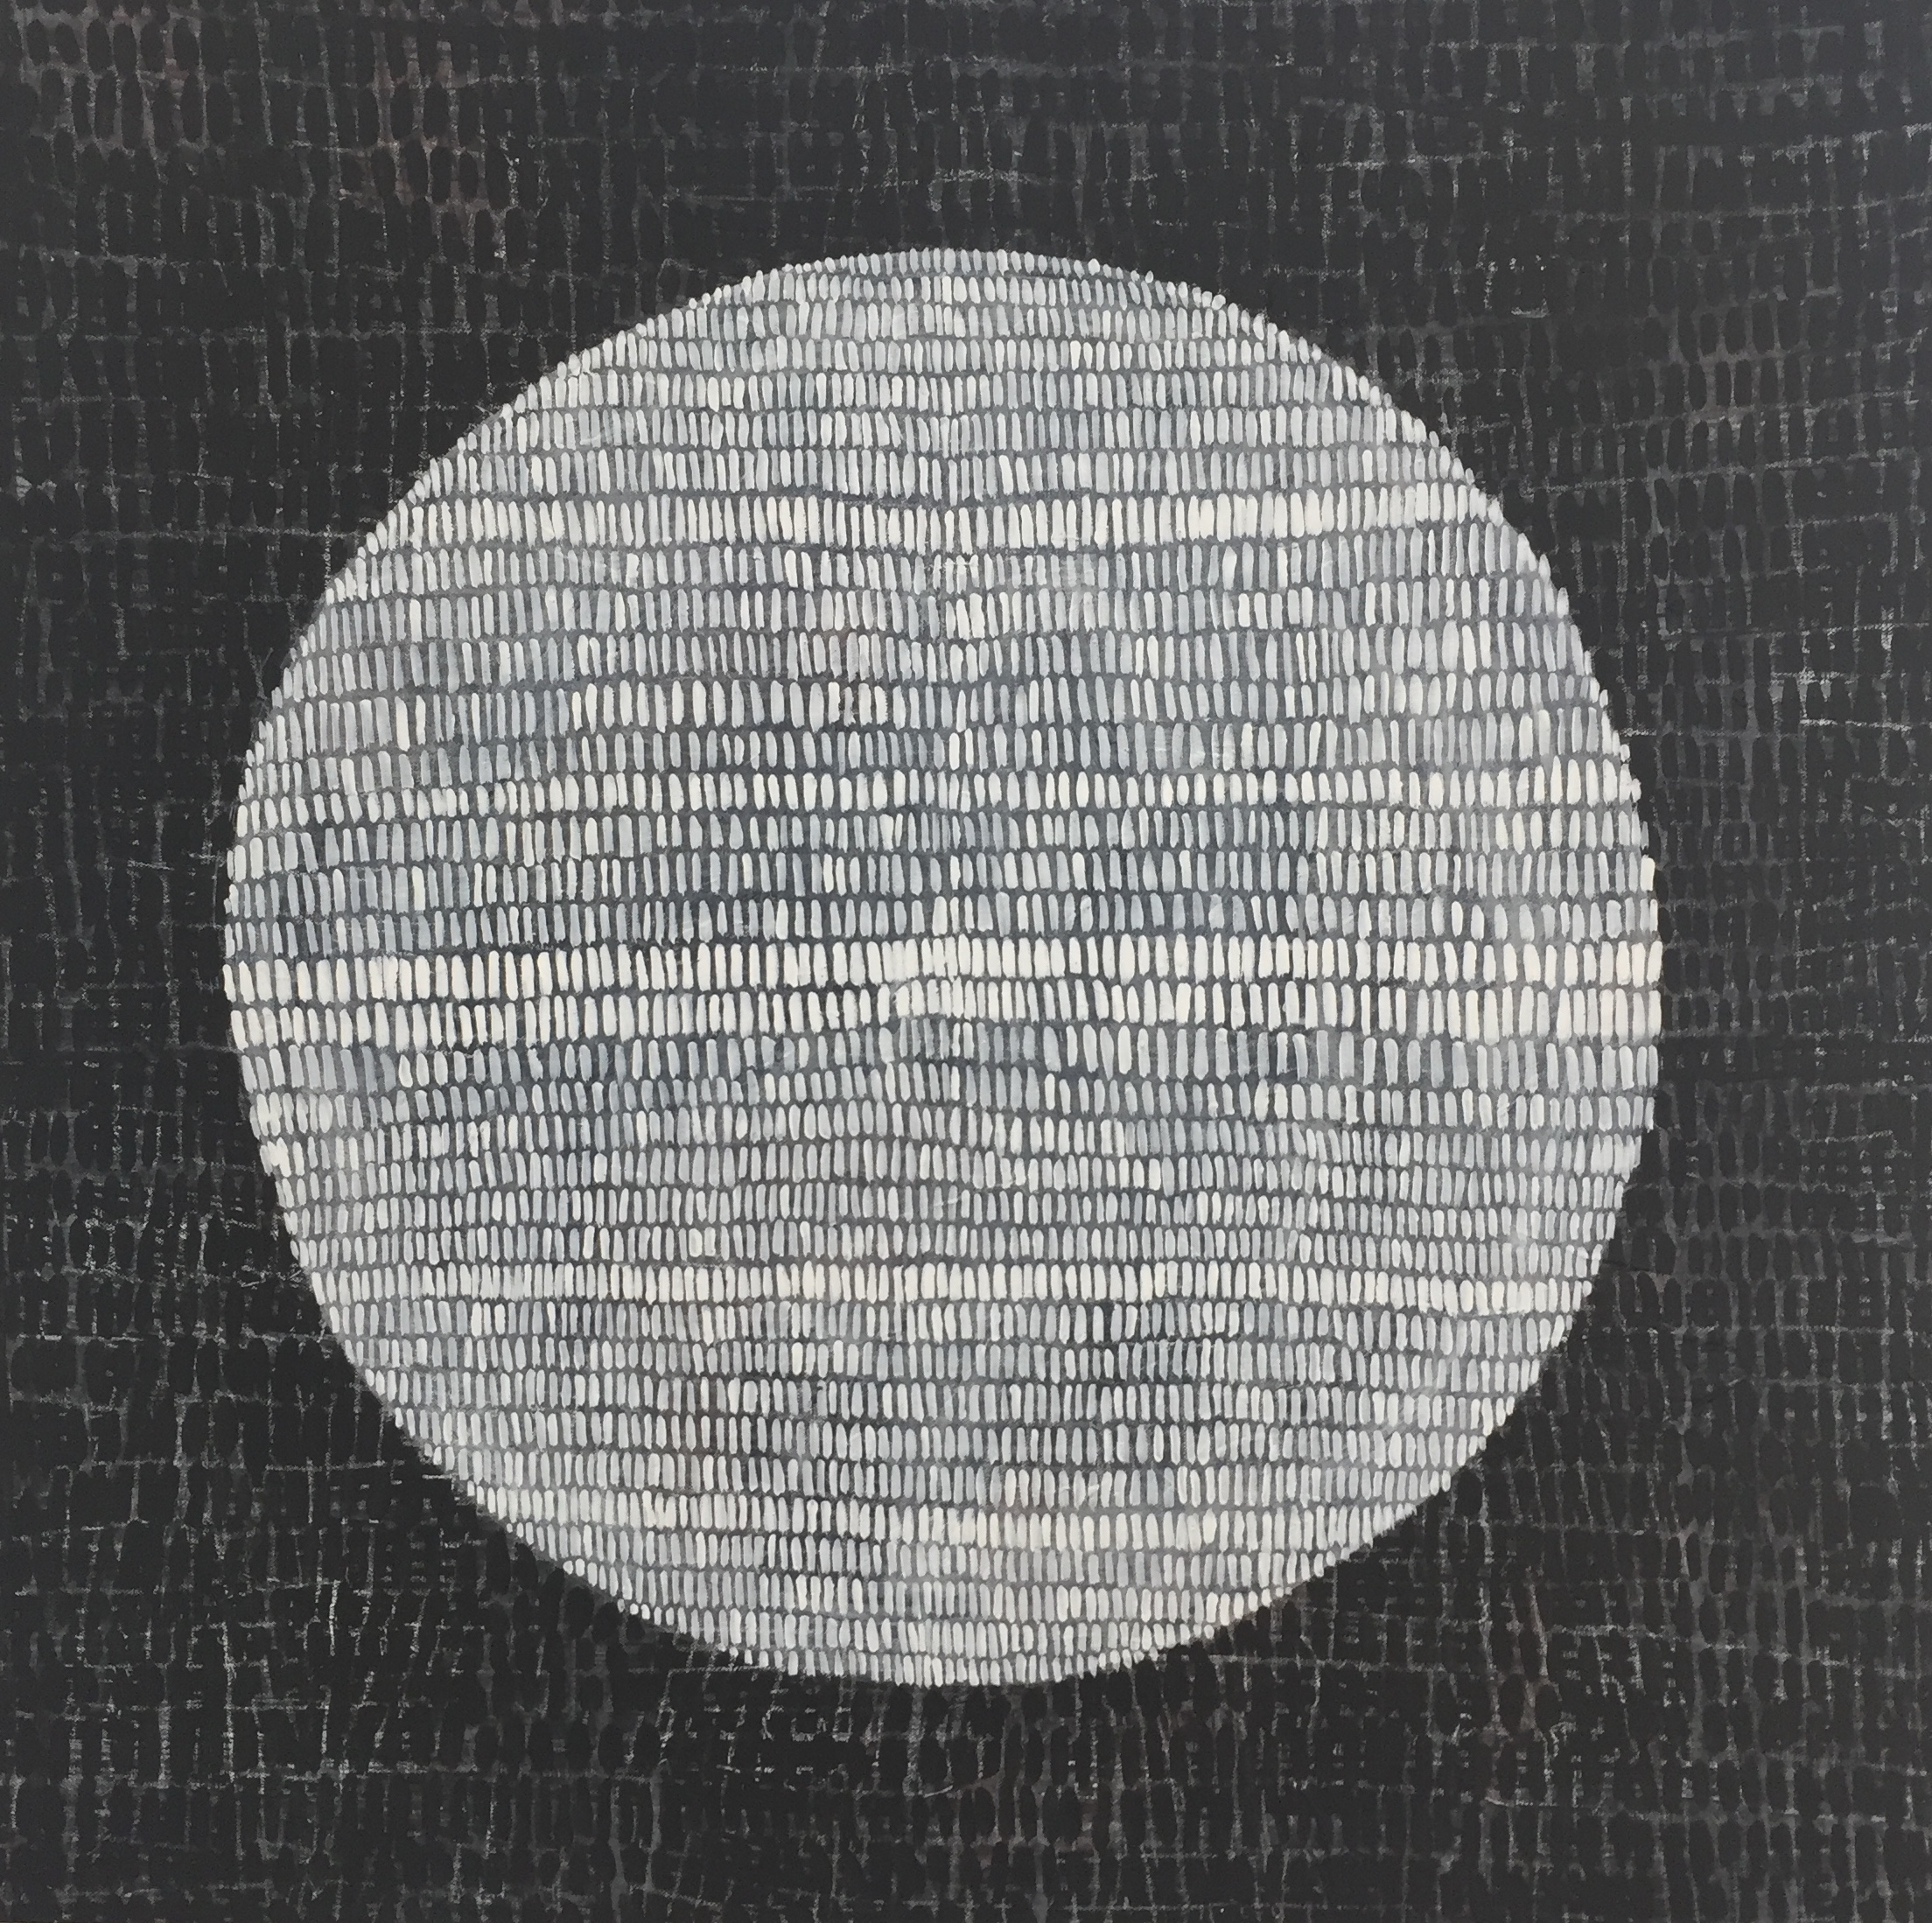 Caelli Jo Brooker_Full Moon 2018_acrylic, ink, crayon on canvas and board_90 x90cm_$540.00.JPG